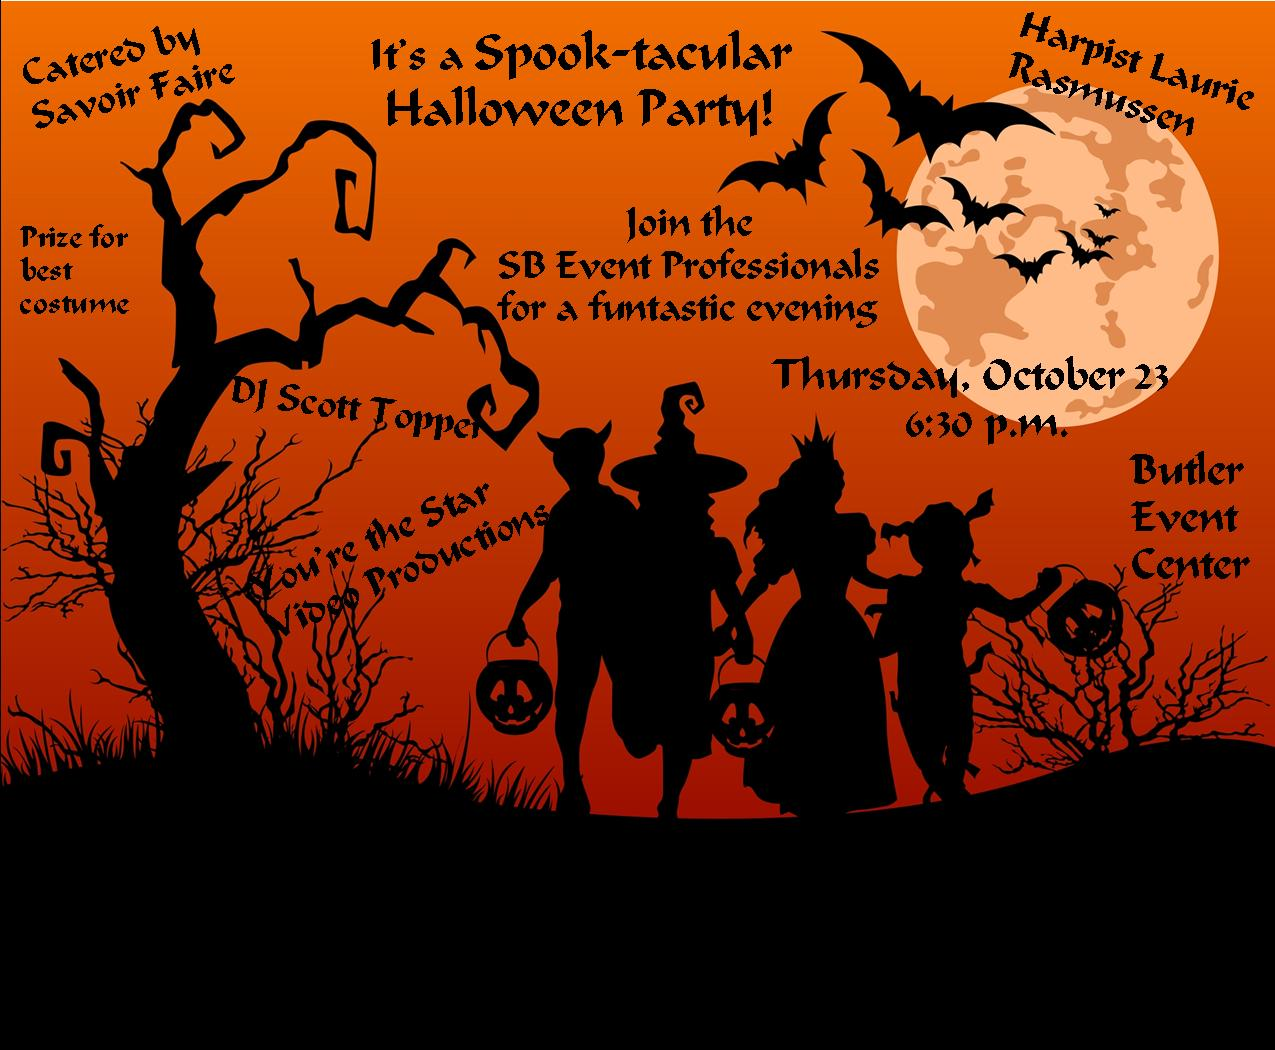 Spook-tacular Special Event Industry Halloween Party this Thursday ...